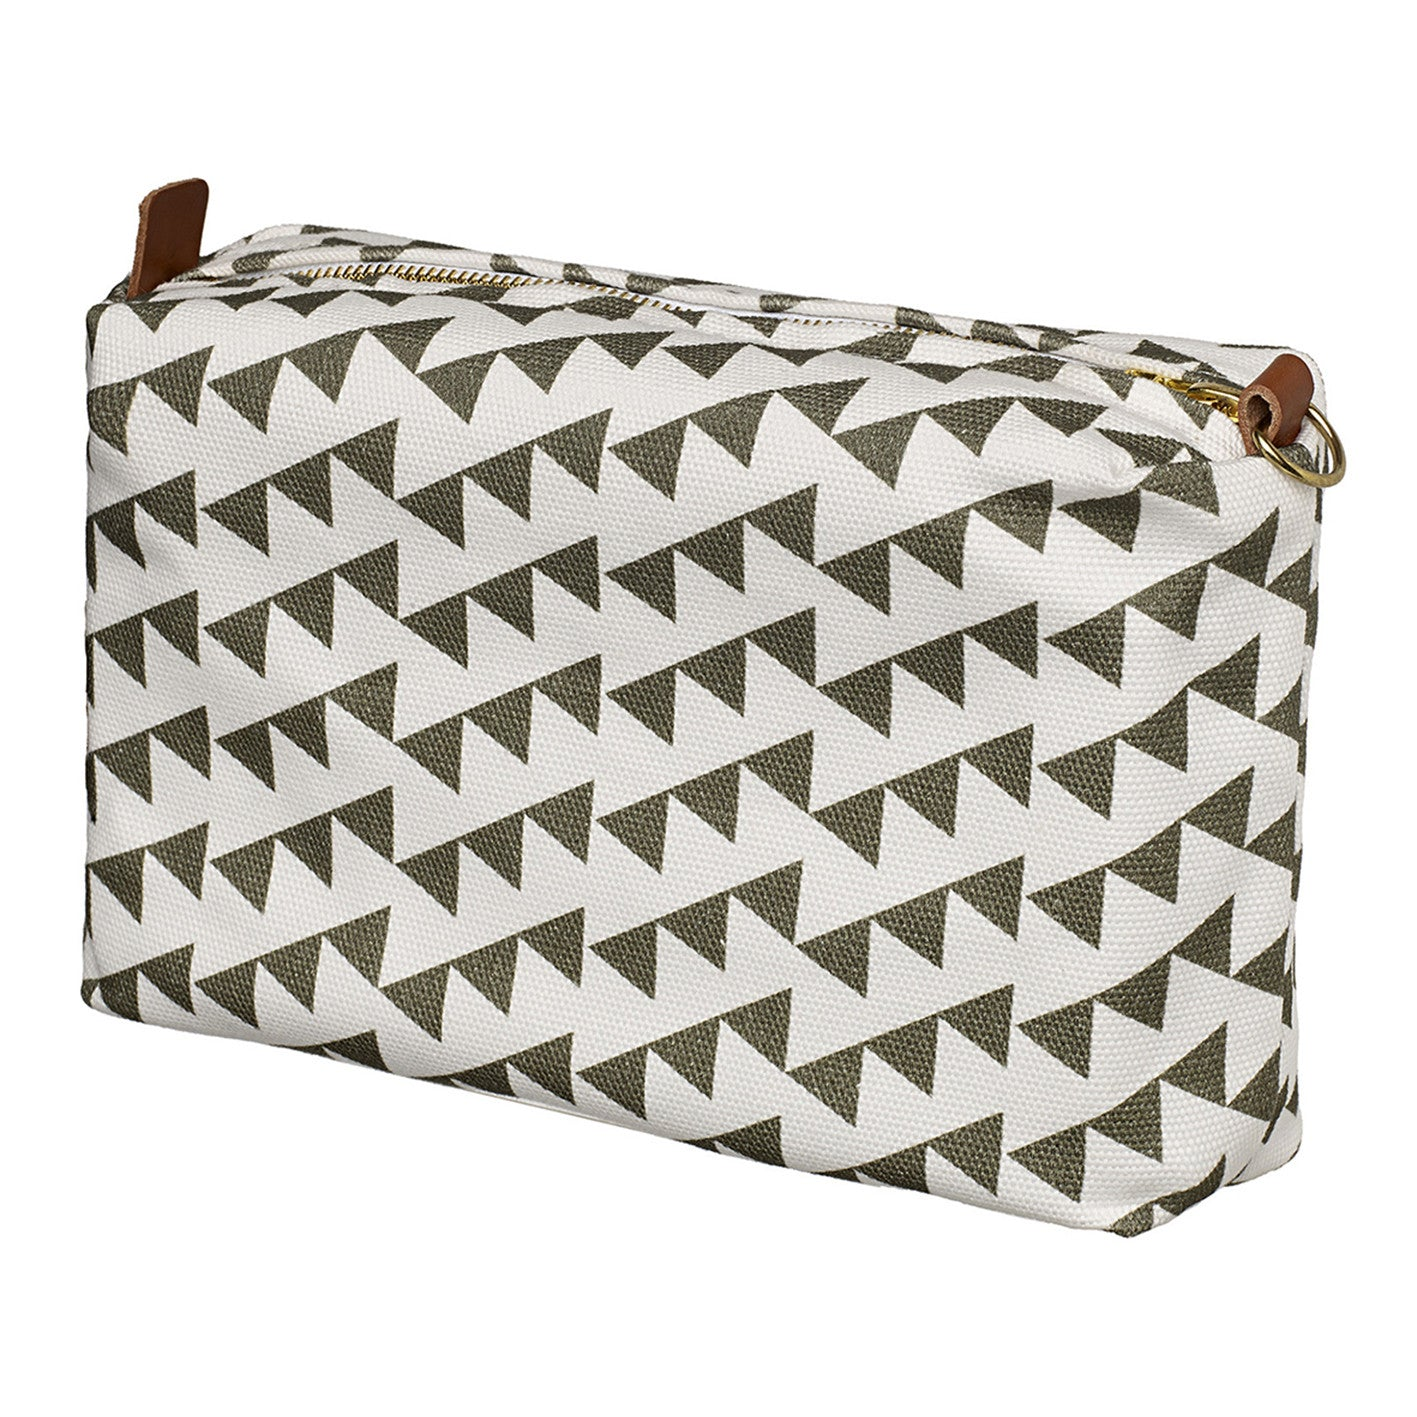 Bunting Geometric Pattern Canvas Toiletry Bag in Dark Olive Green